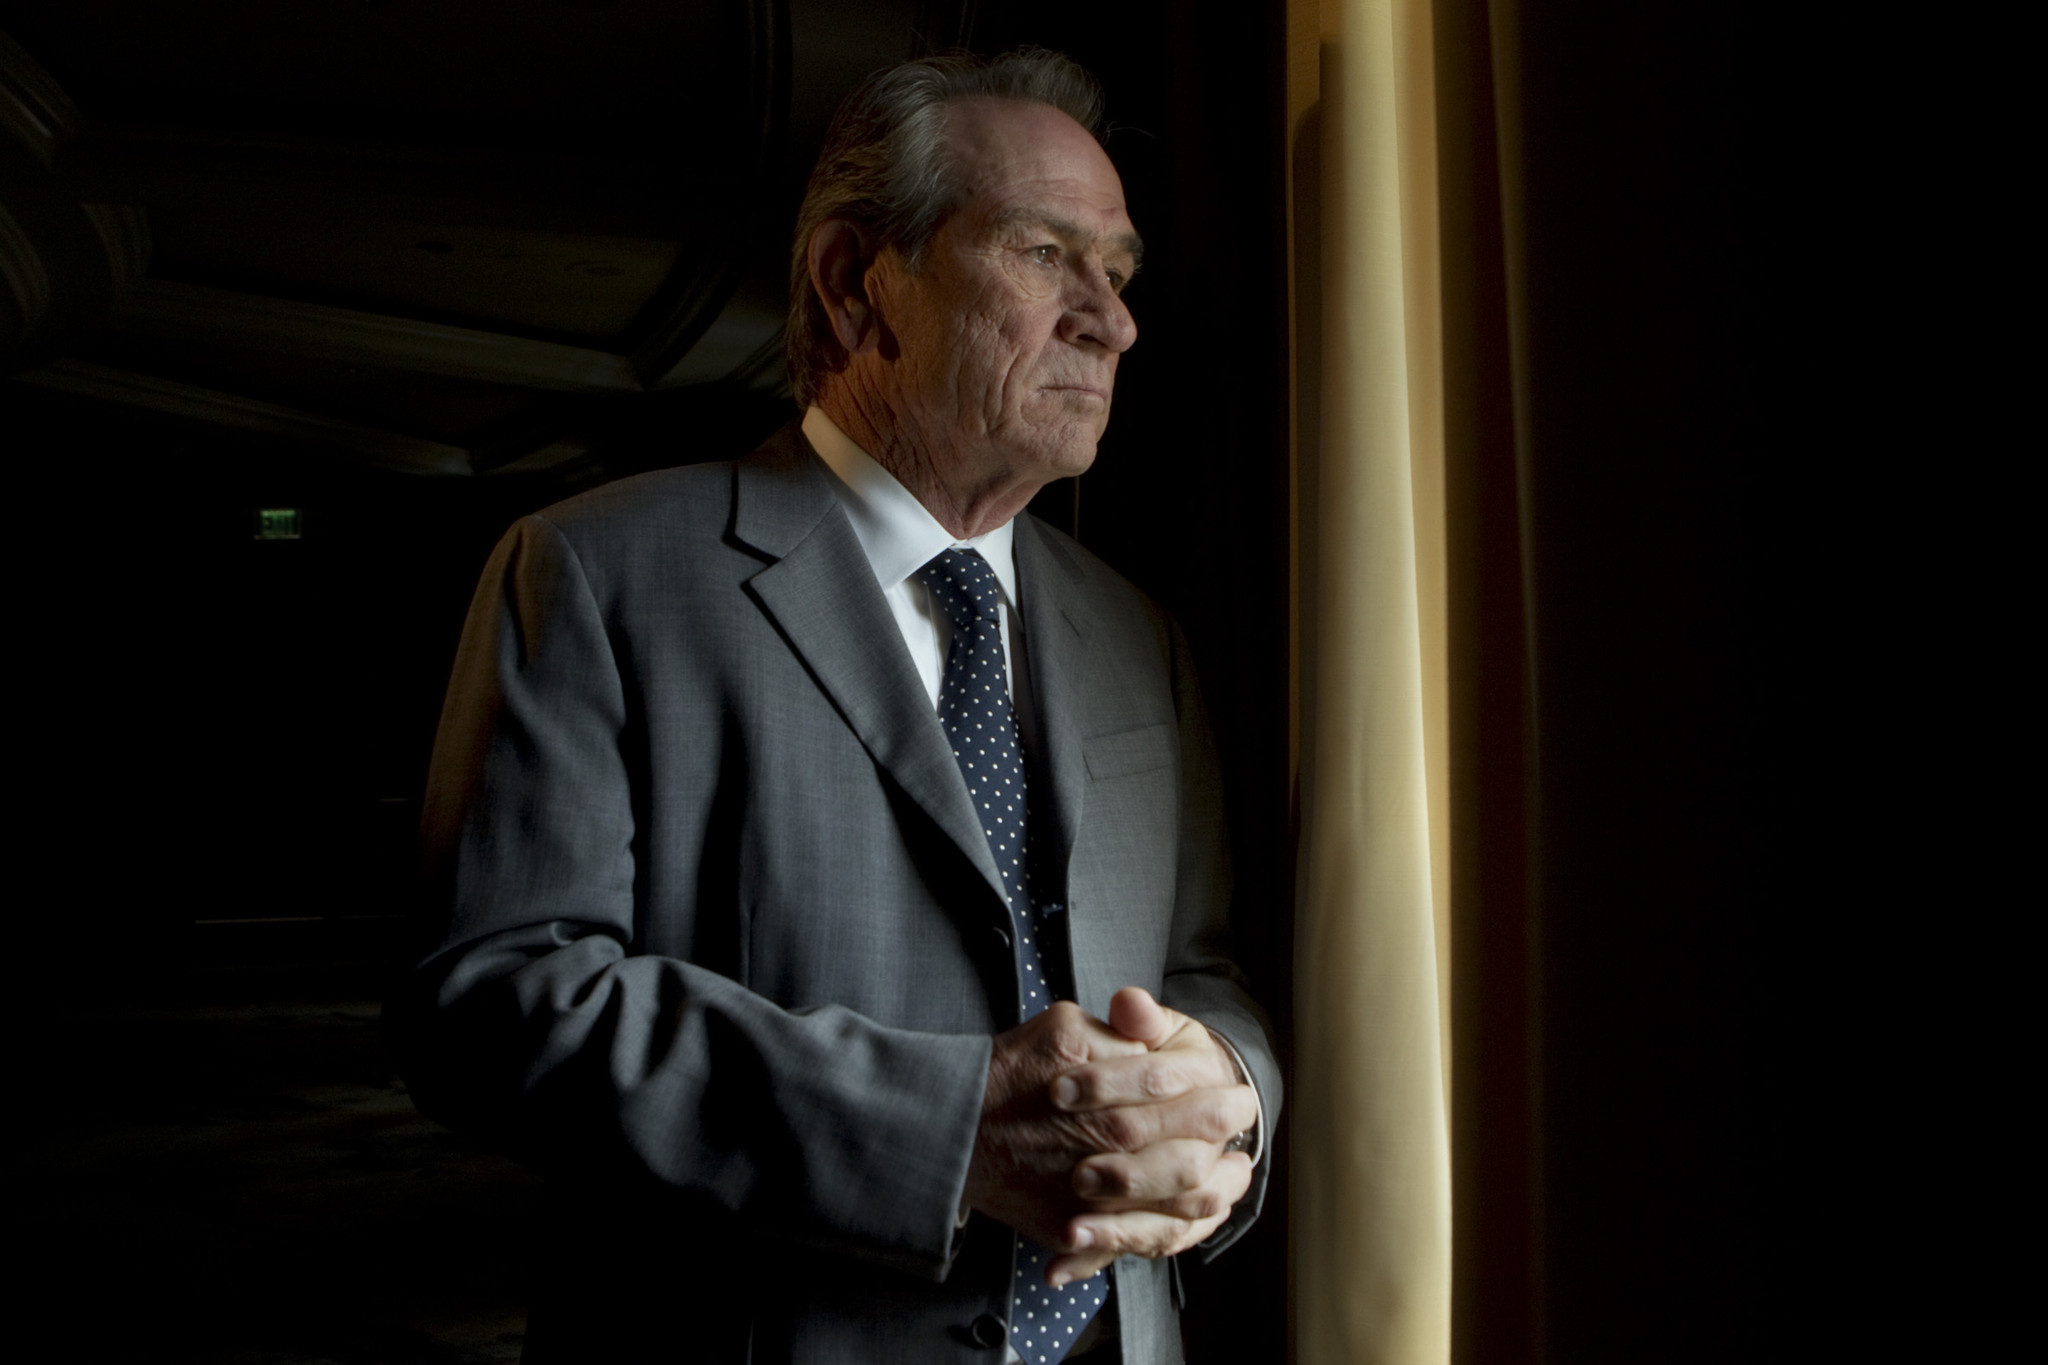 Tommy Lee Jones joins Matt Damon in next 'Bourne' movie ...